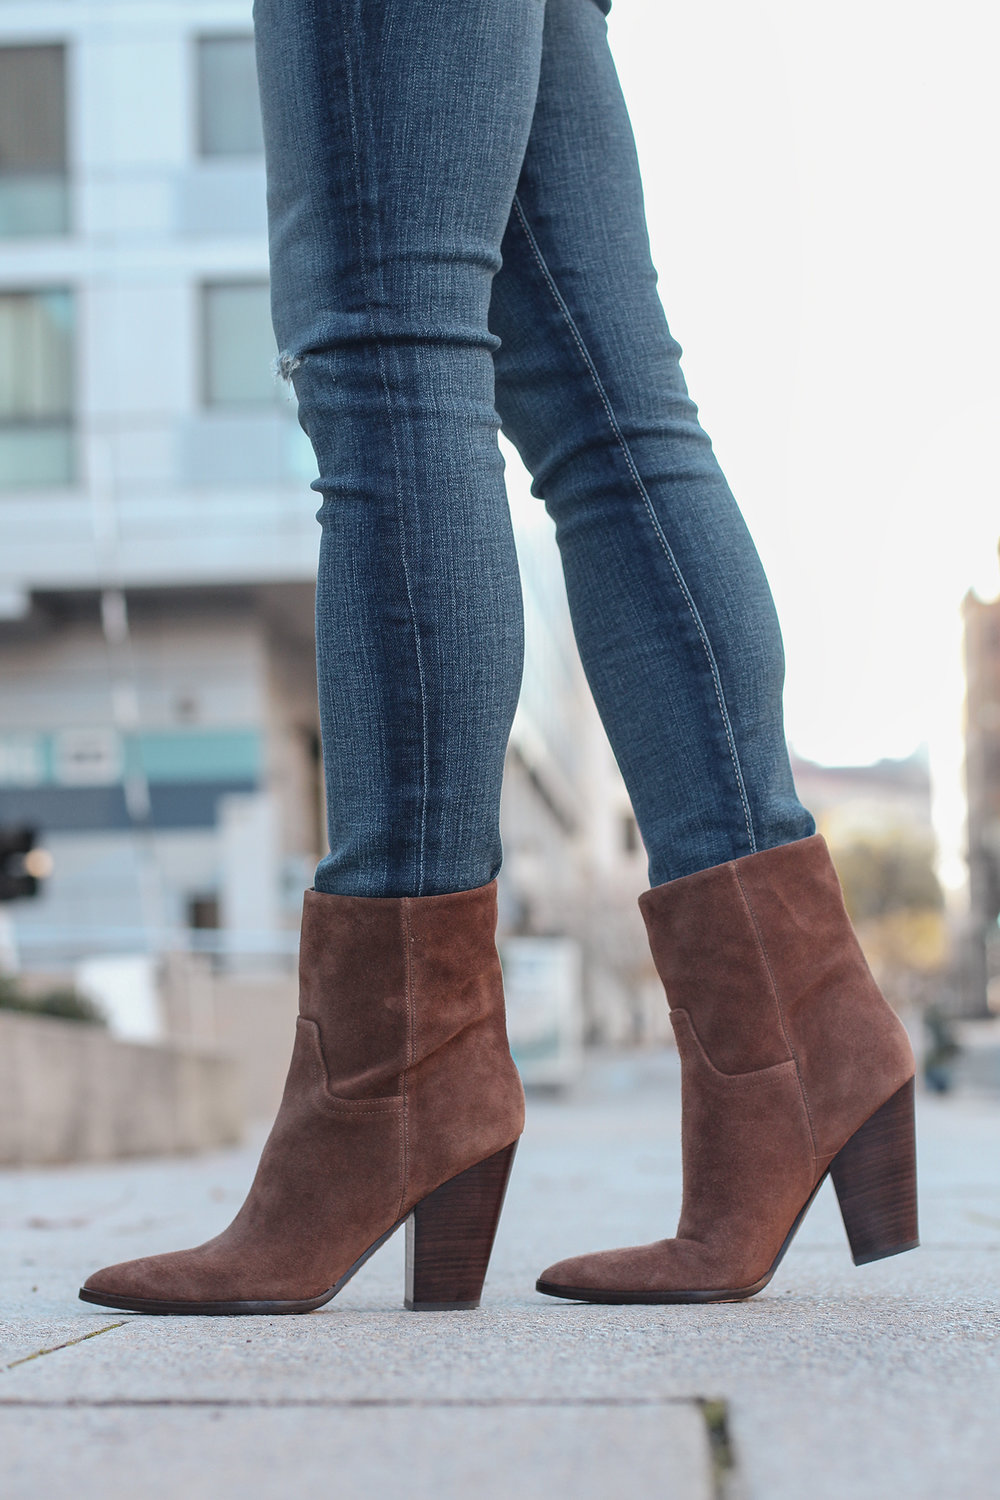 Cute Brown Ankle Boots, Marc Fisher Boots, How to Style Brown Boots